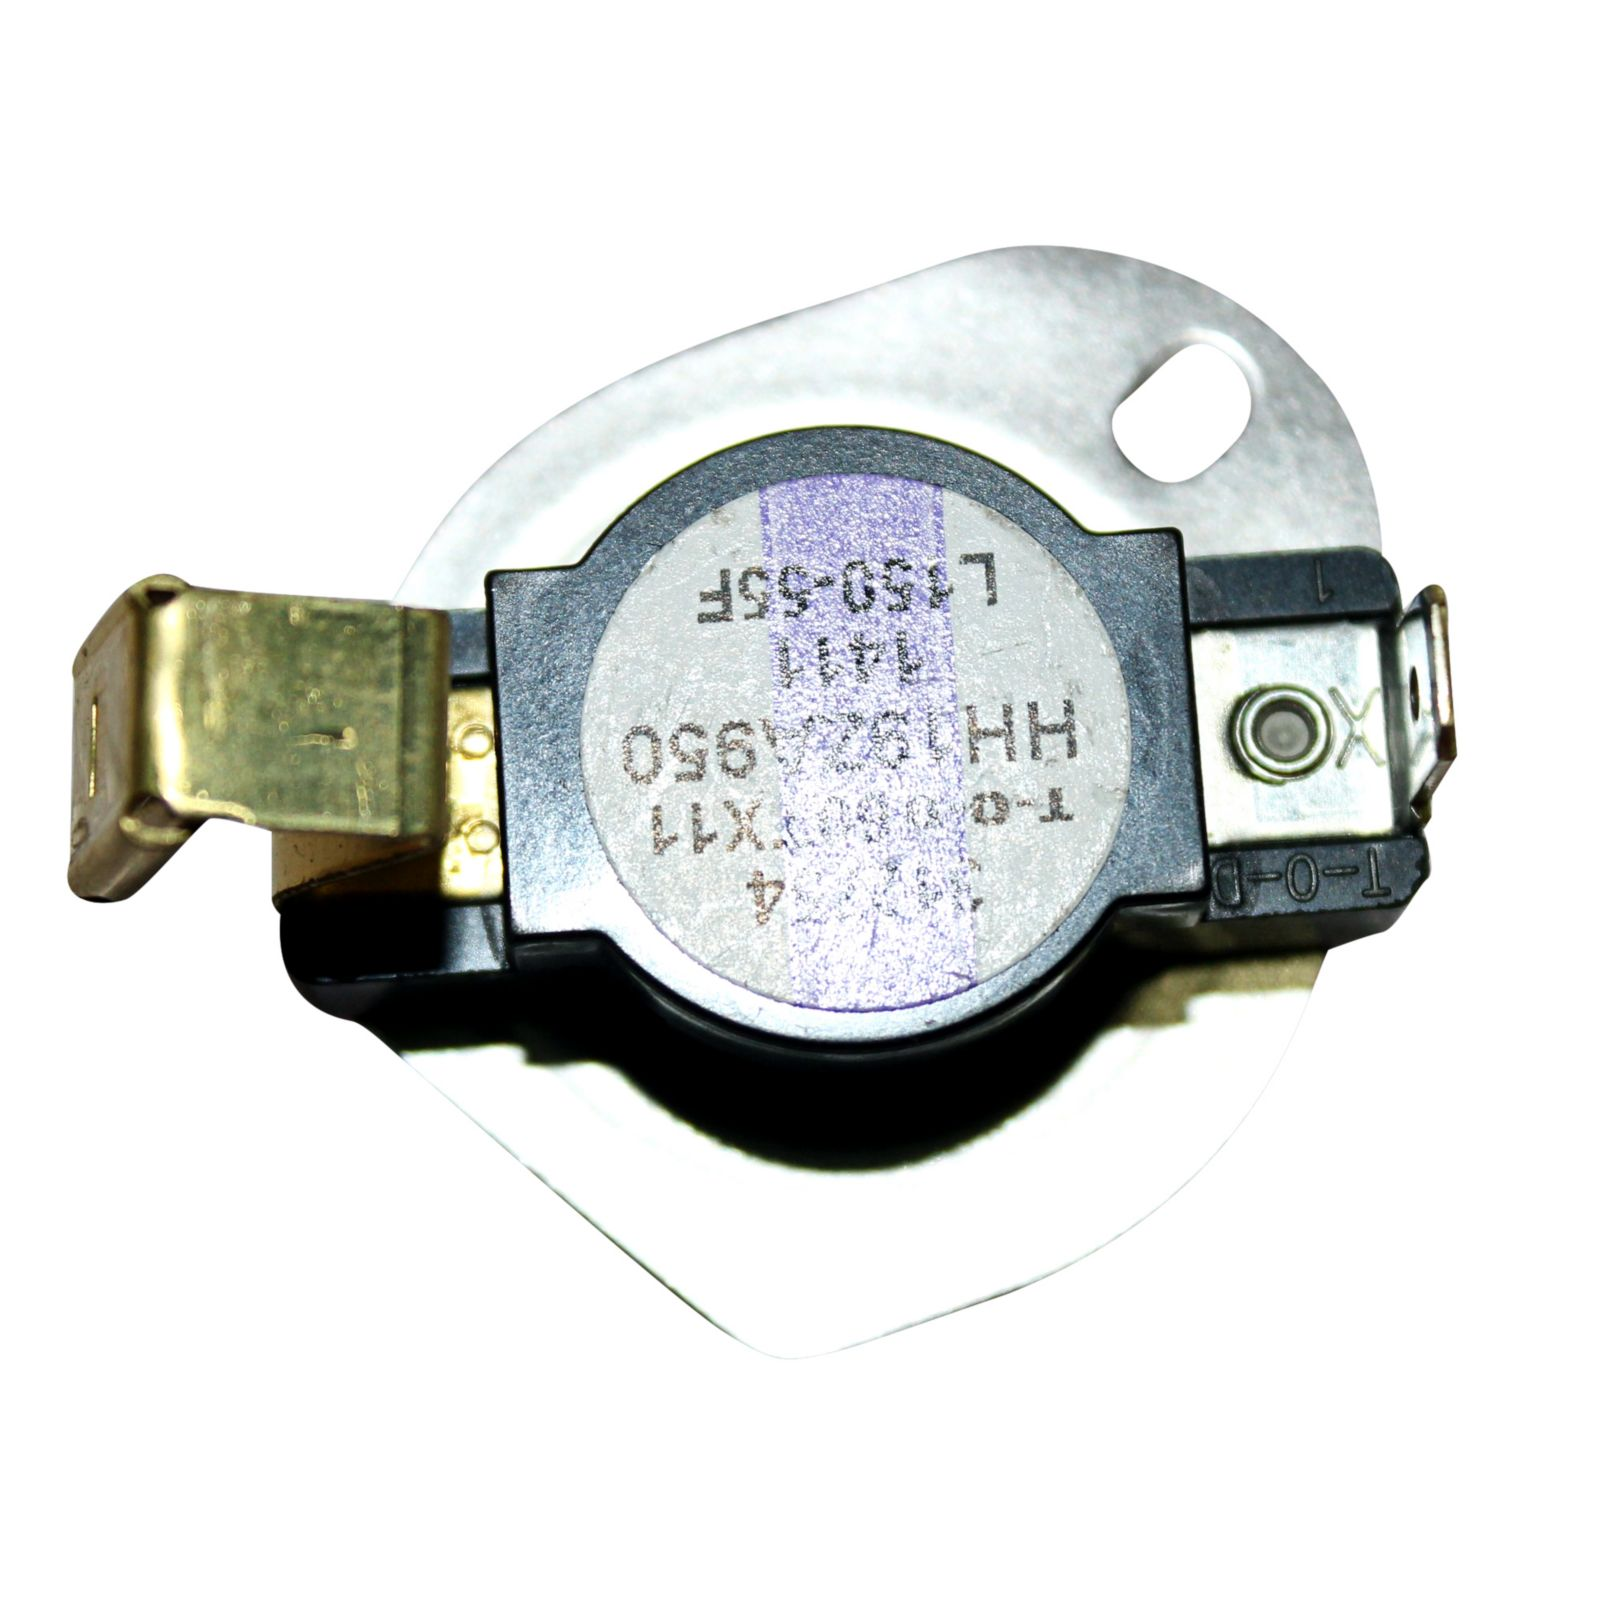 ICP 1171901 - Limit Switch 150-60